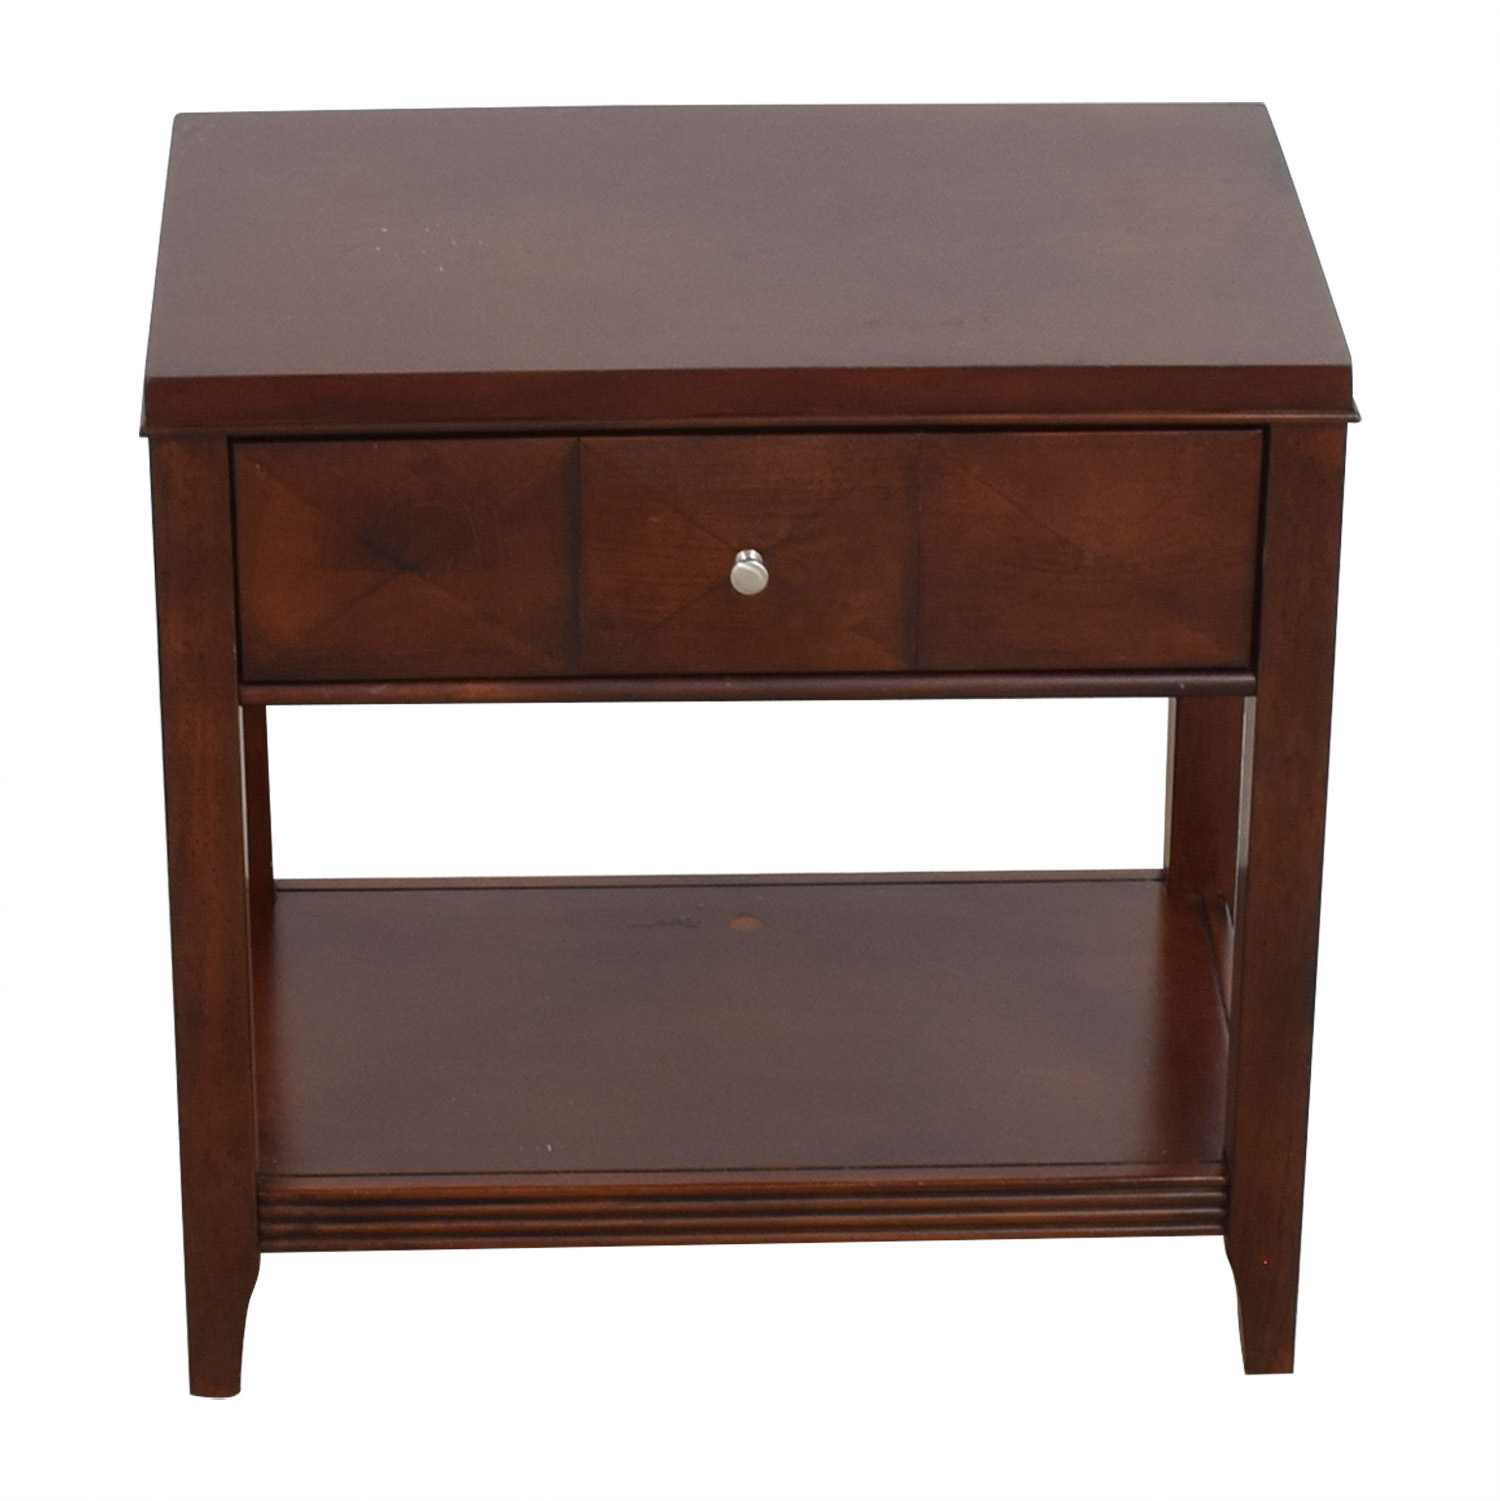 shop Raymour & Flanigan Shadow Expresso Single Drawer Nightstand Raymour & Flanigan Tables